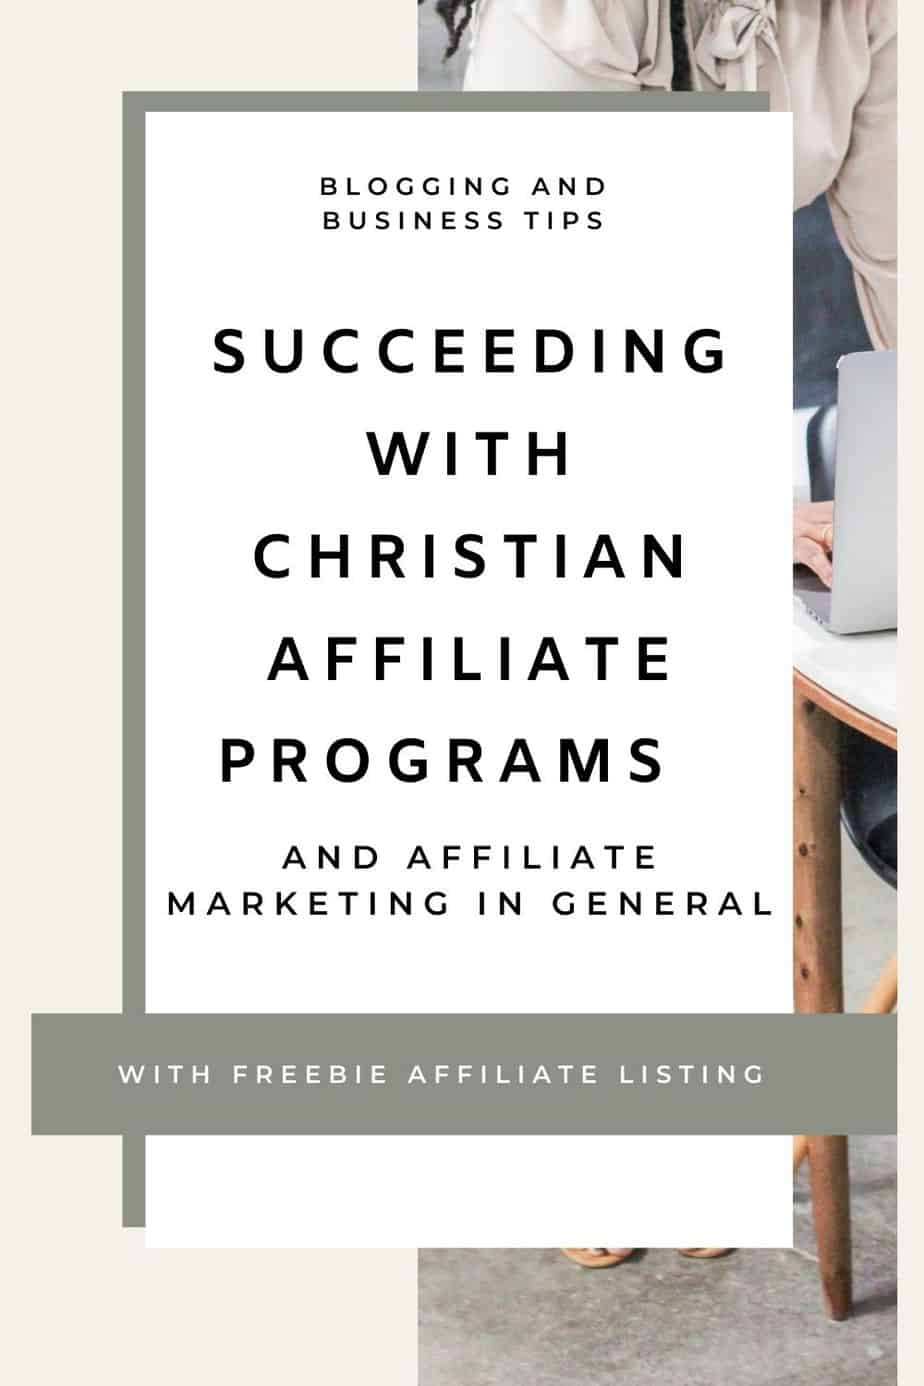 A woman standing at a computer in the background and text that says Succeeding With Christian Affiliate Programs and Affiliate Marketing in General With Freebie Affiliate Listing